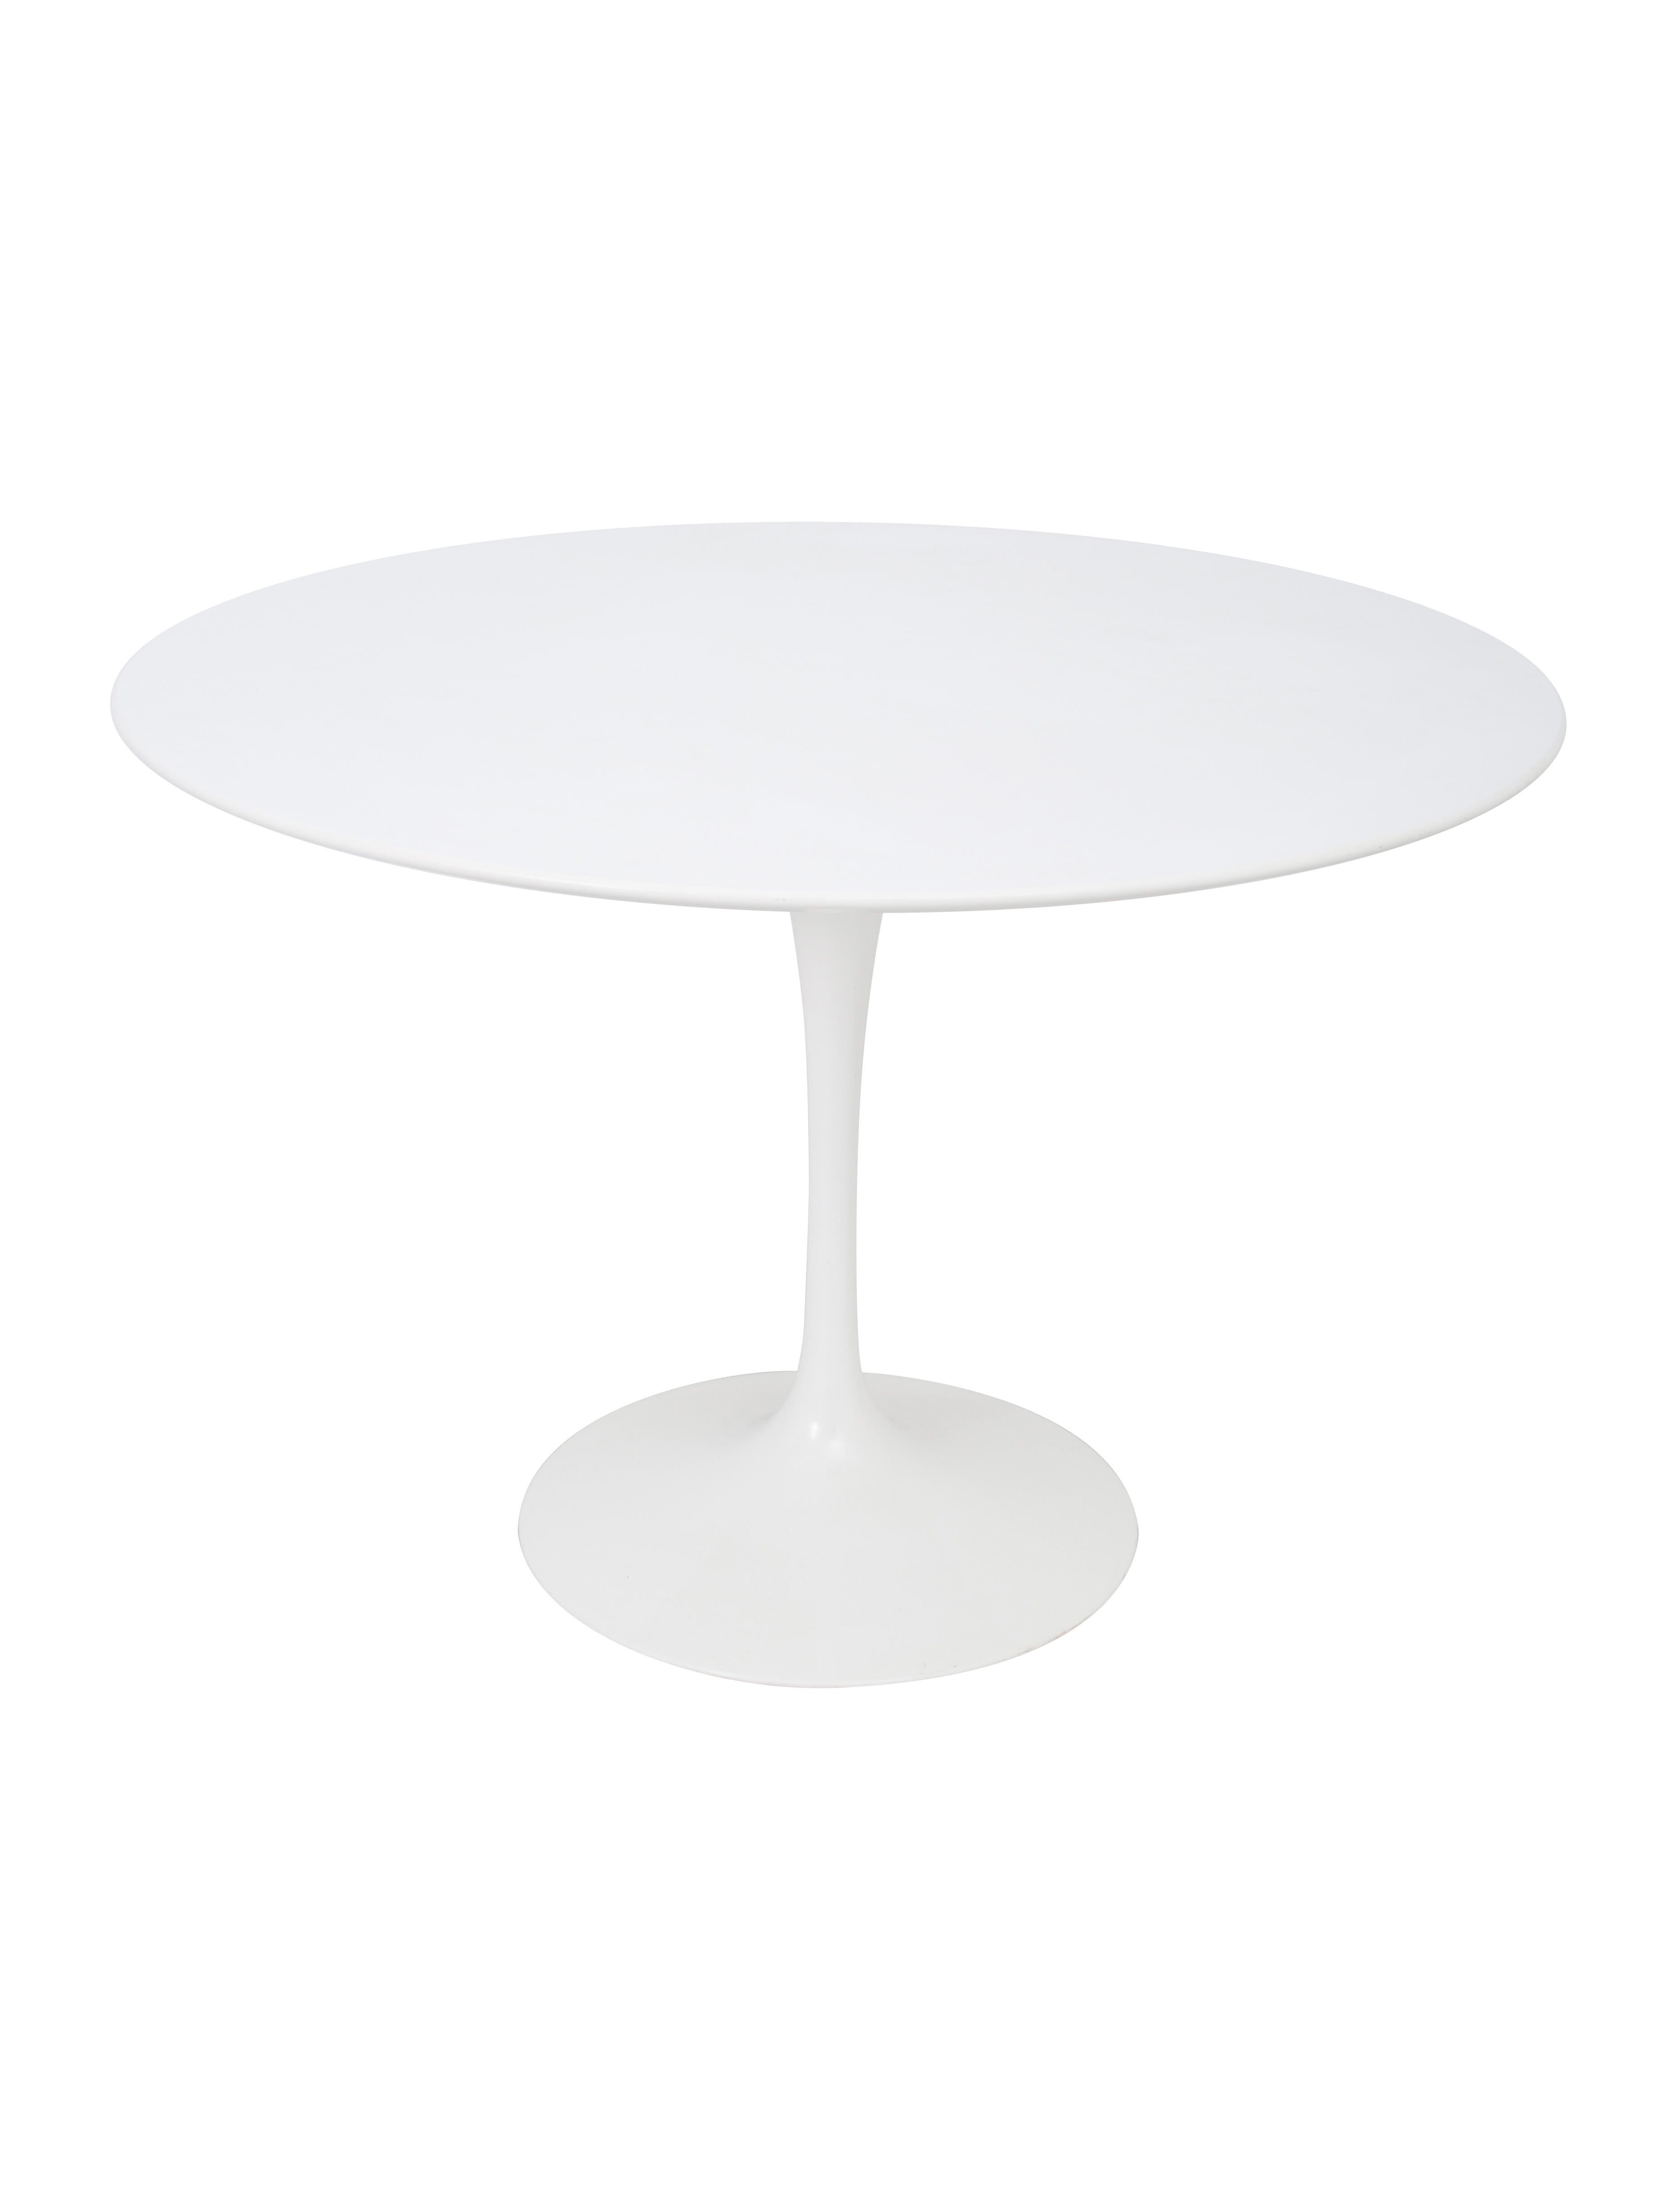 knoll saarinen round dining table furniture knl20033 the realreal. Black Bedroom Furniture Sets. Home Design Ideas